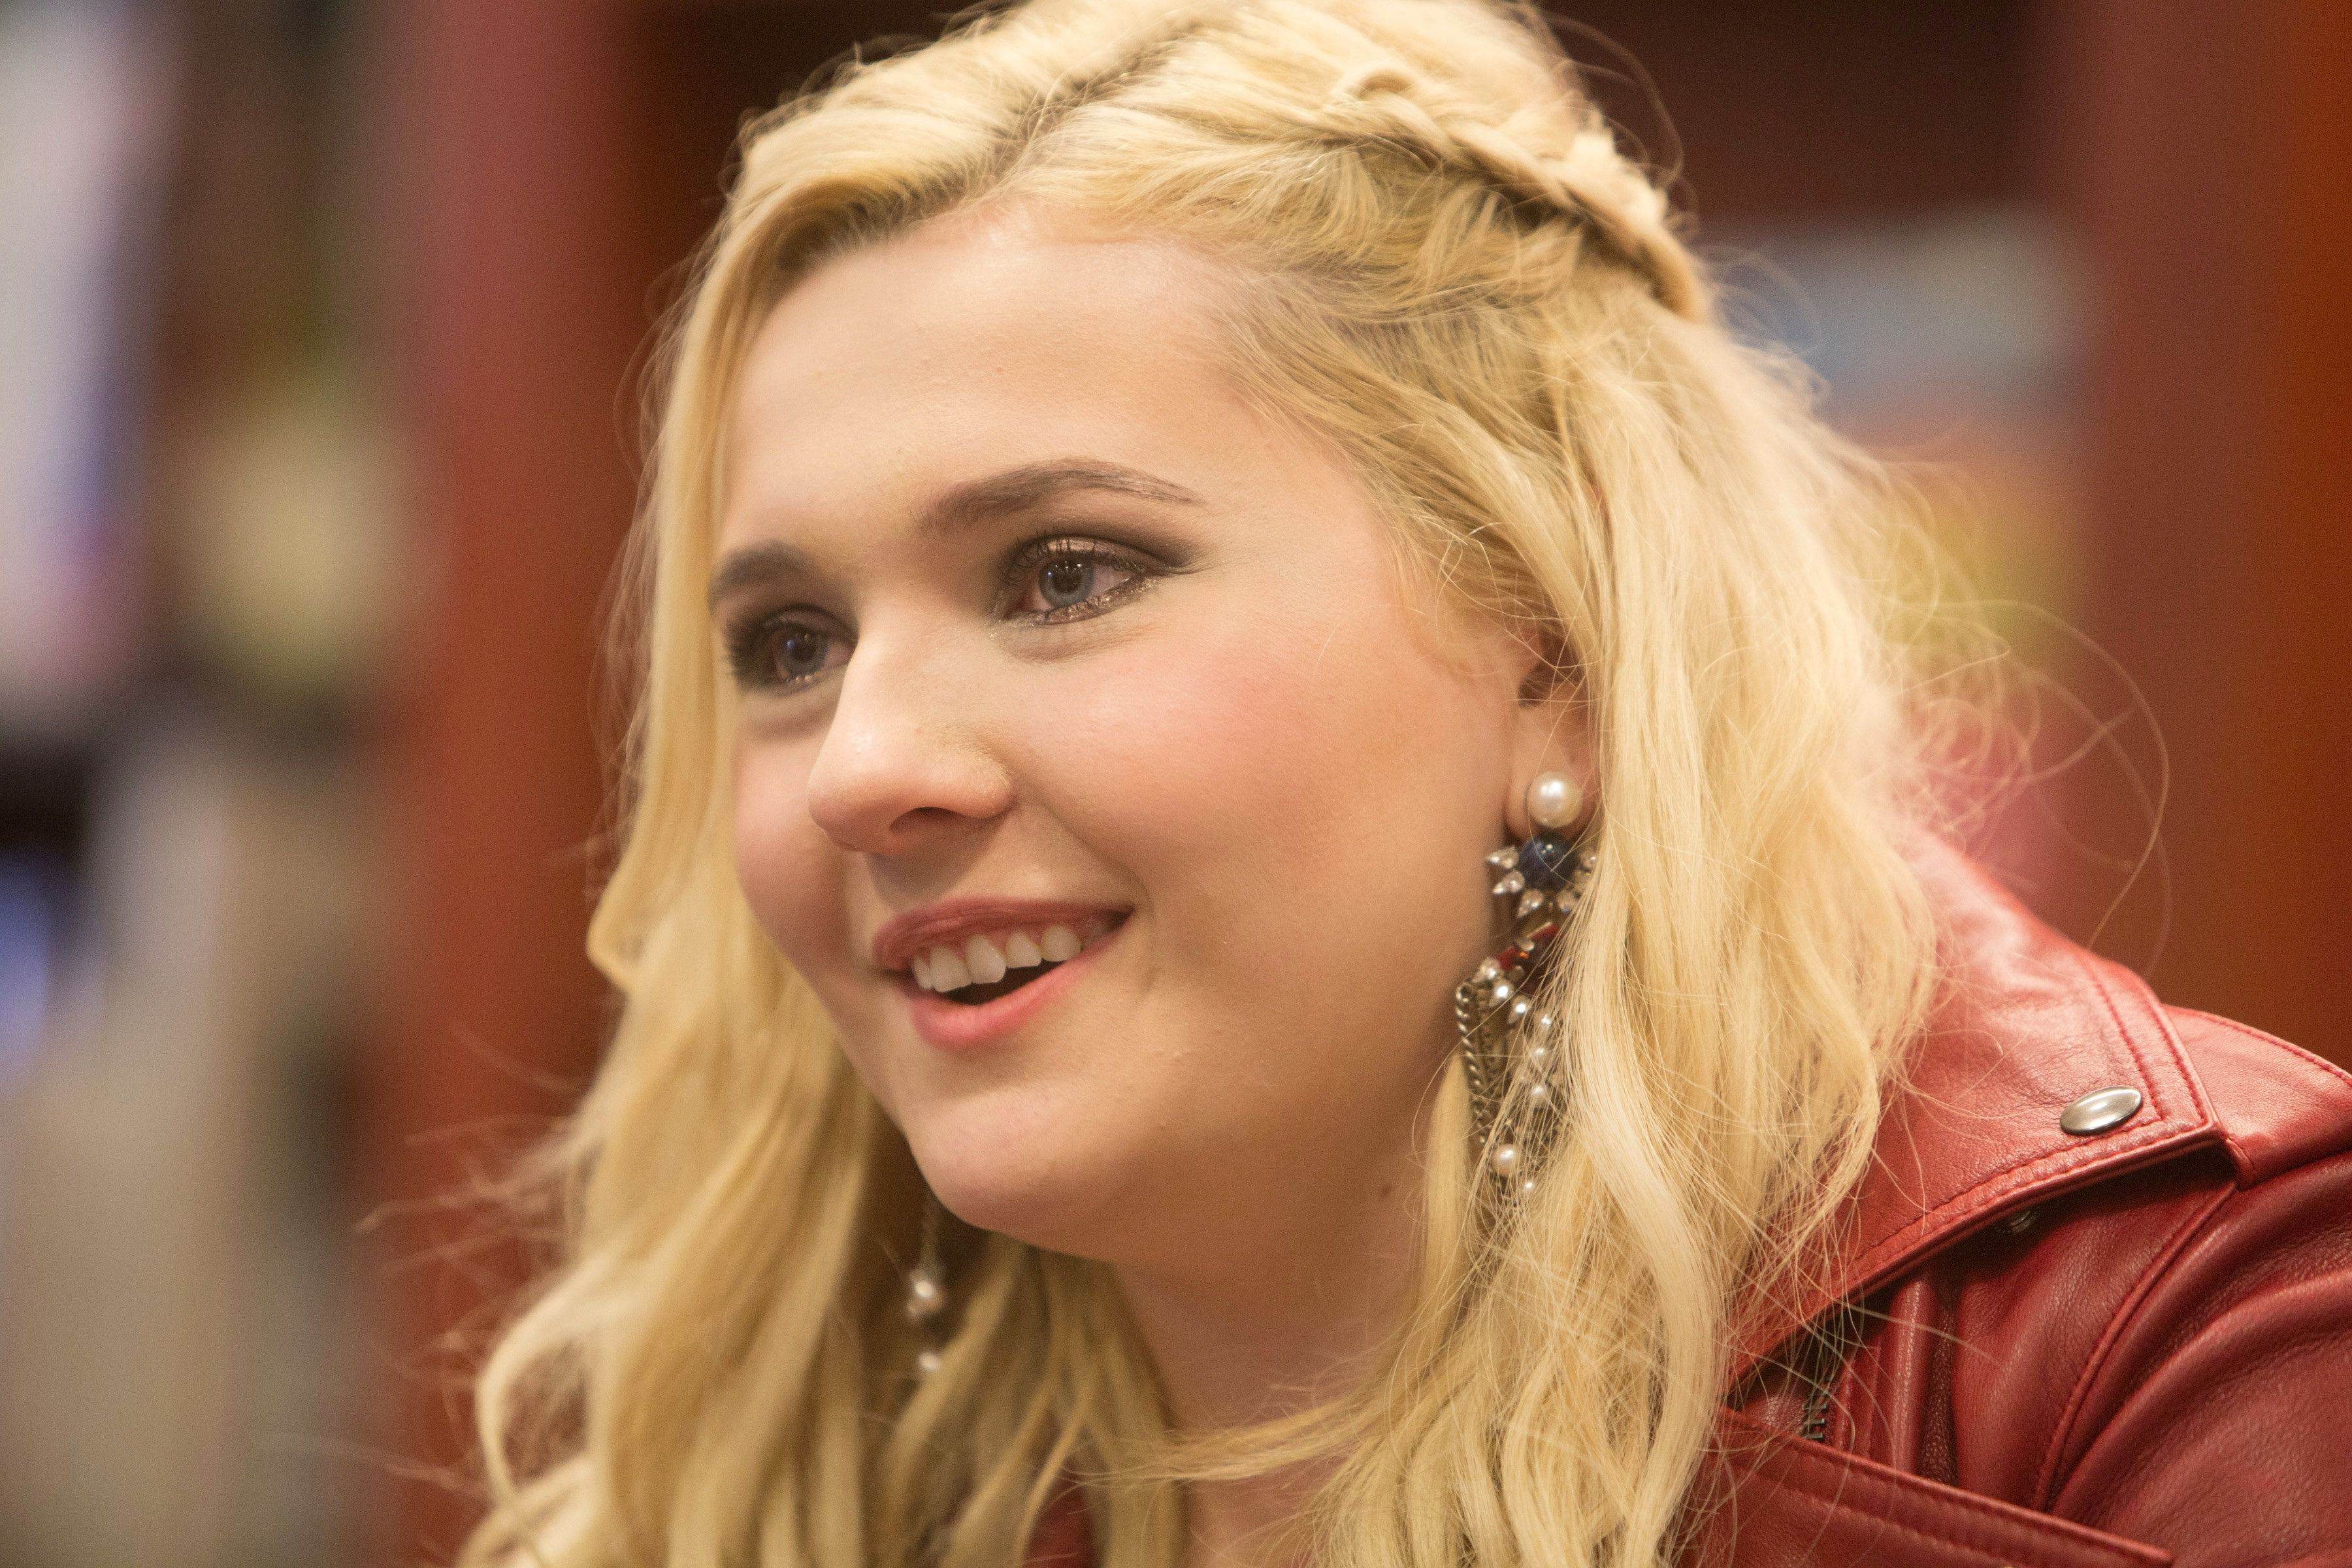 Abigail Breslin nudes (27 pictures), leaked Pussy, Twitter, lingerie 2015